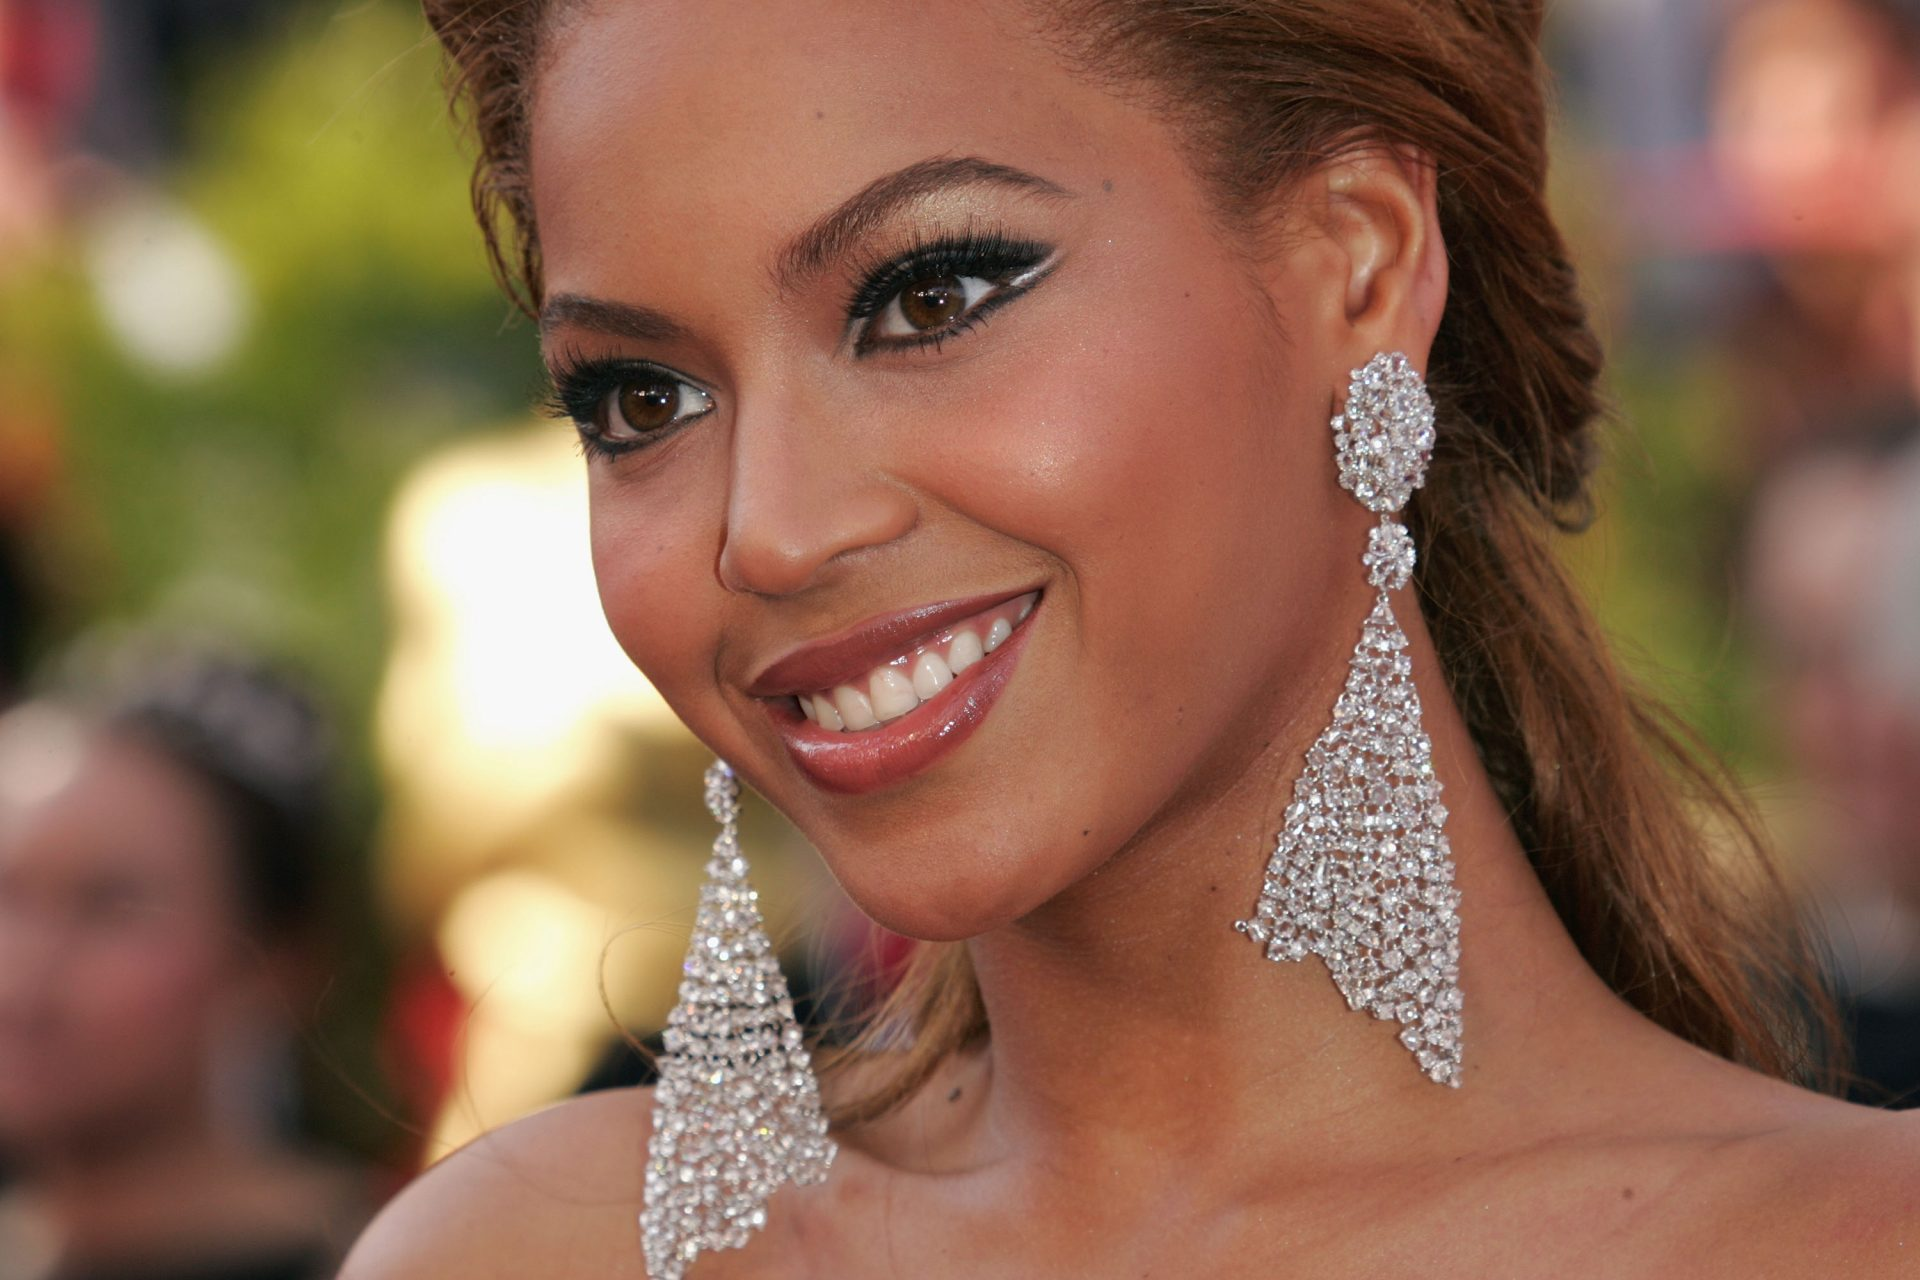 Beyoncé at age 40: from Destiny's Child to Jay-Z, heartaches and extreme wealth